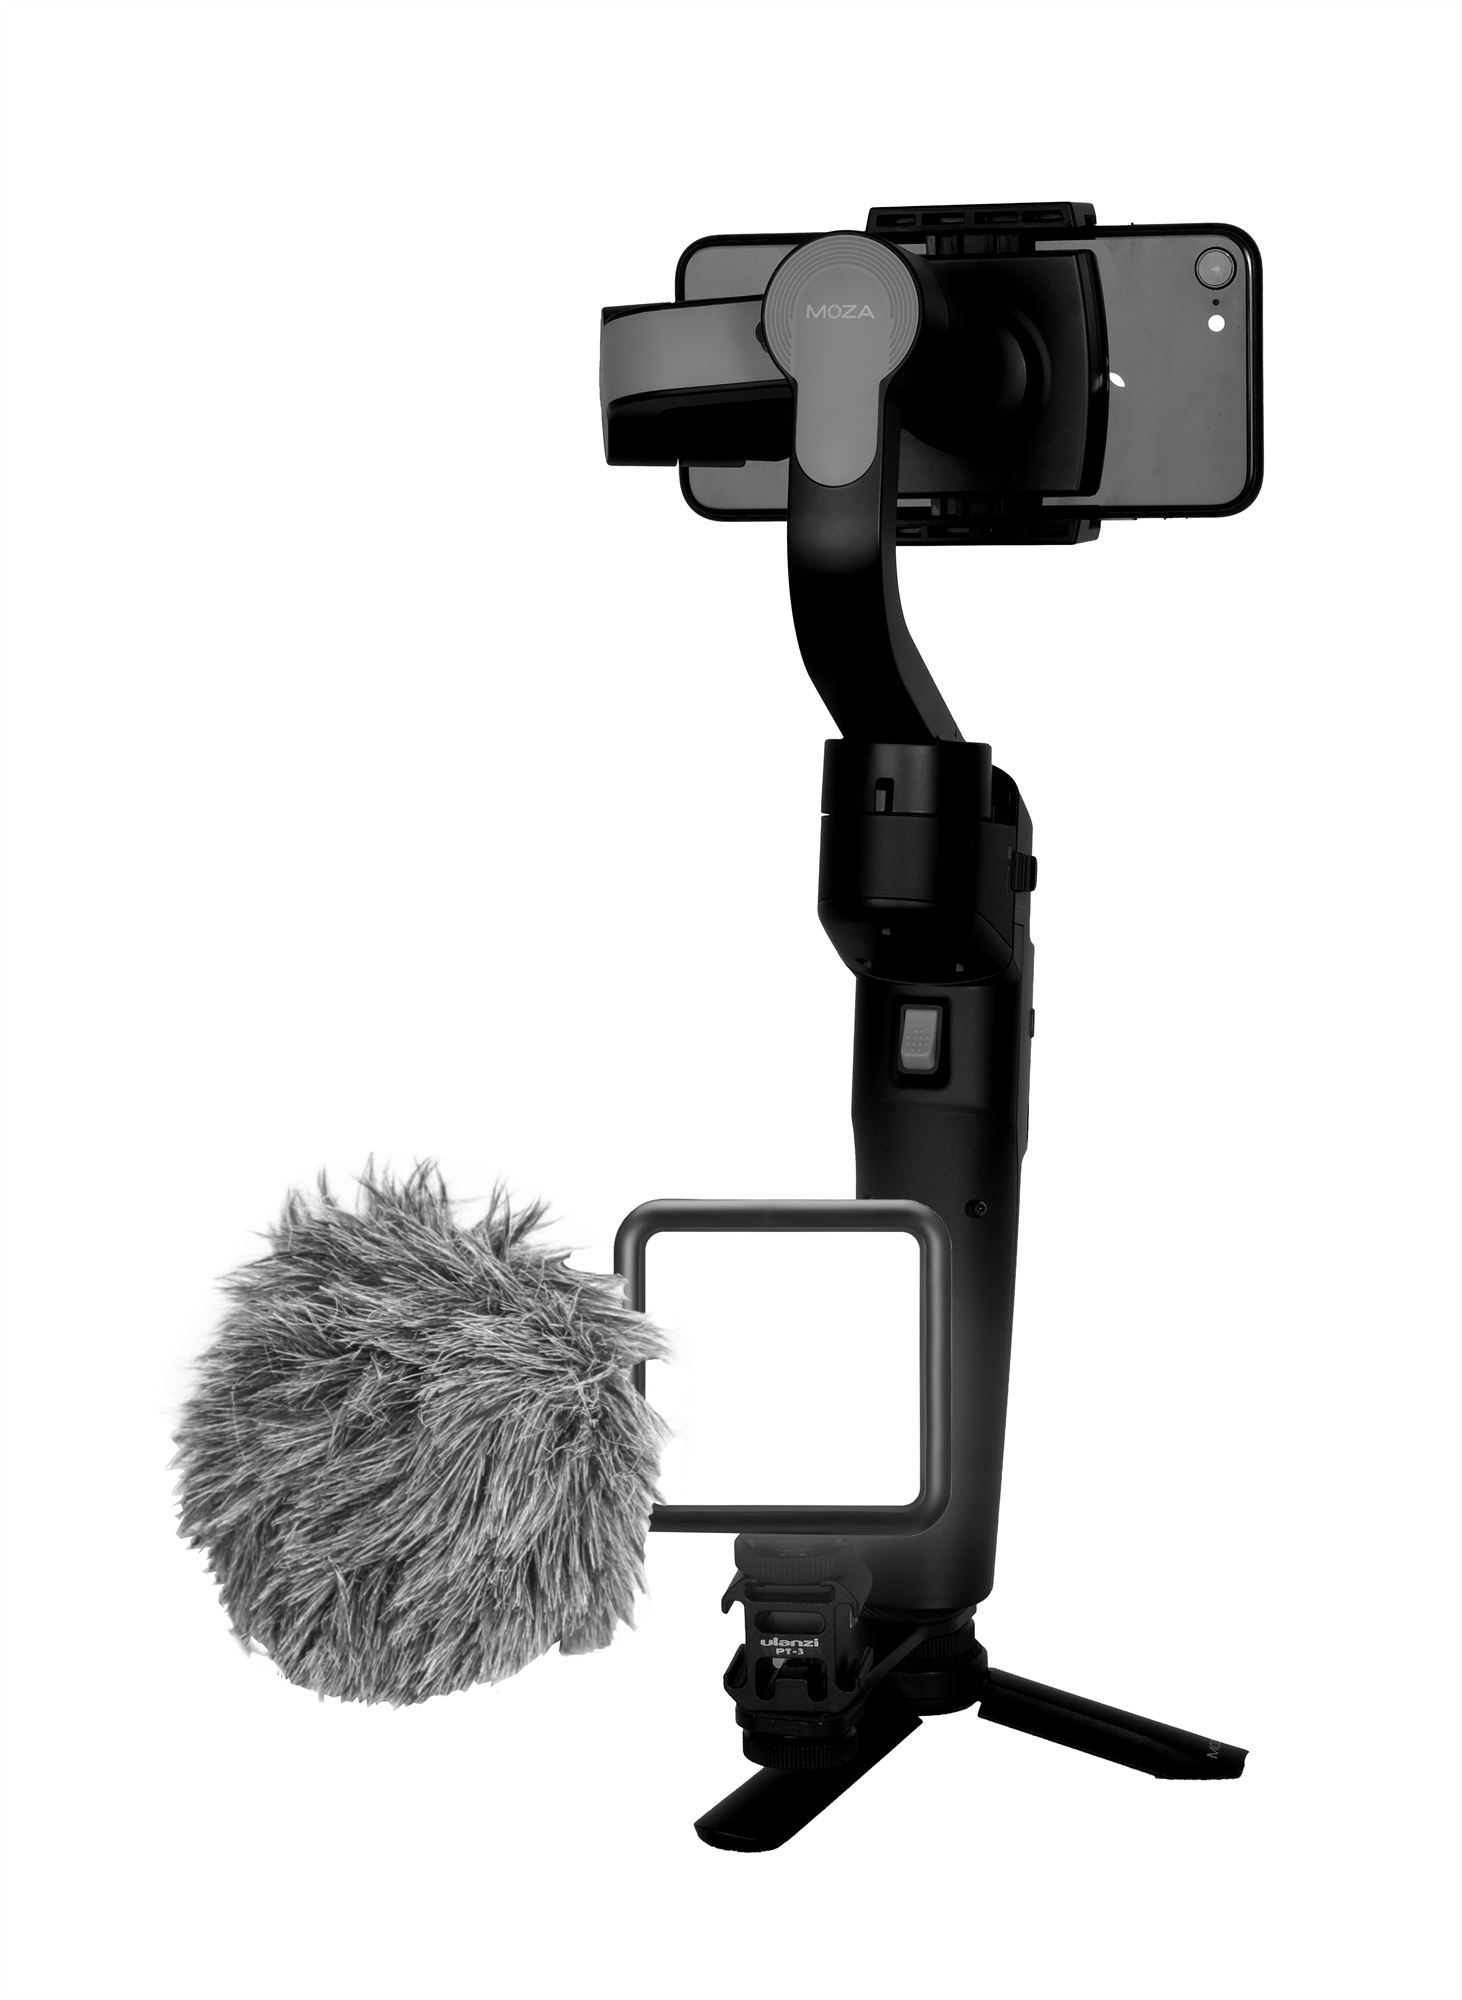 Gimbal+accessories